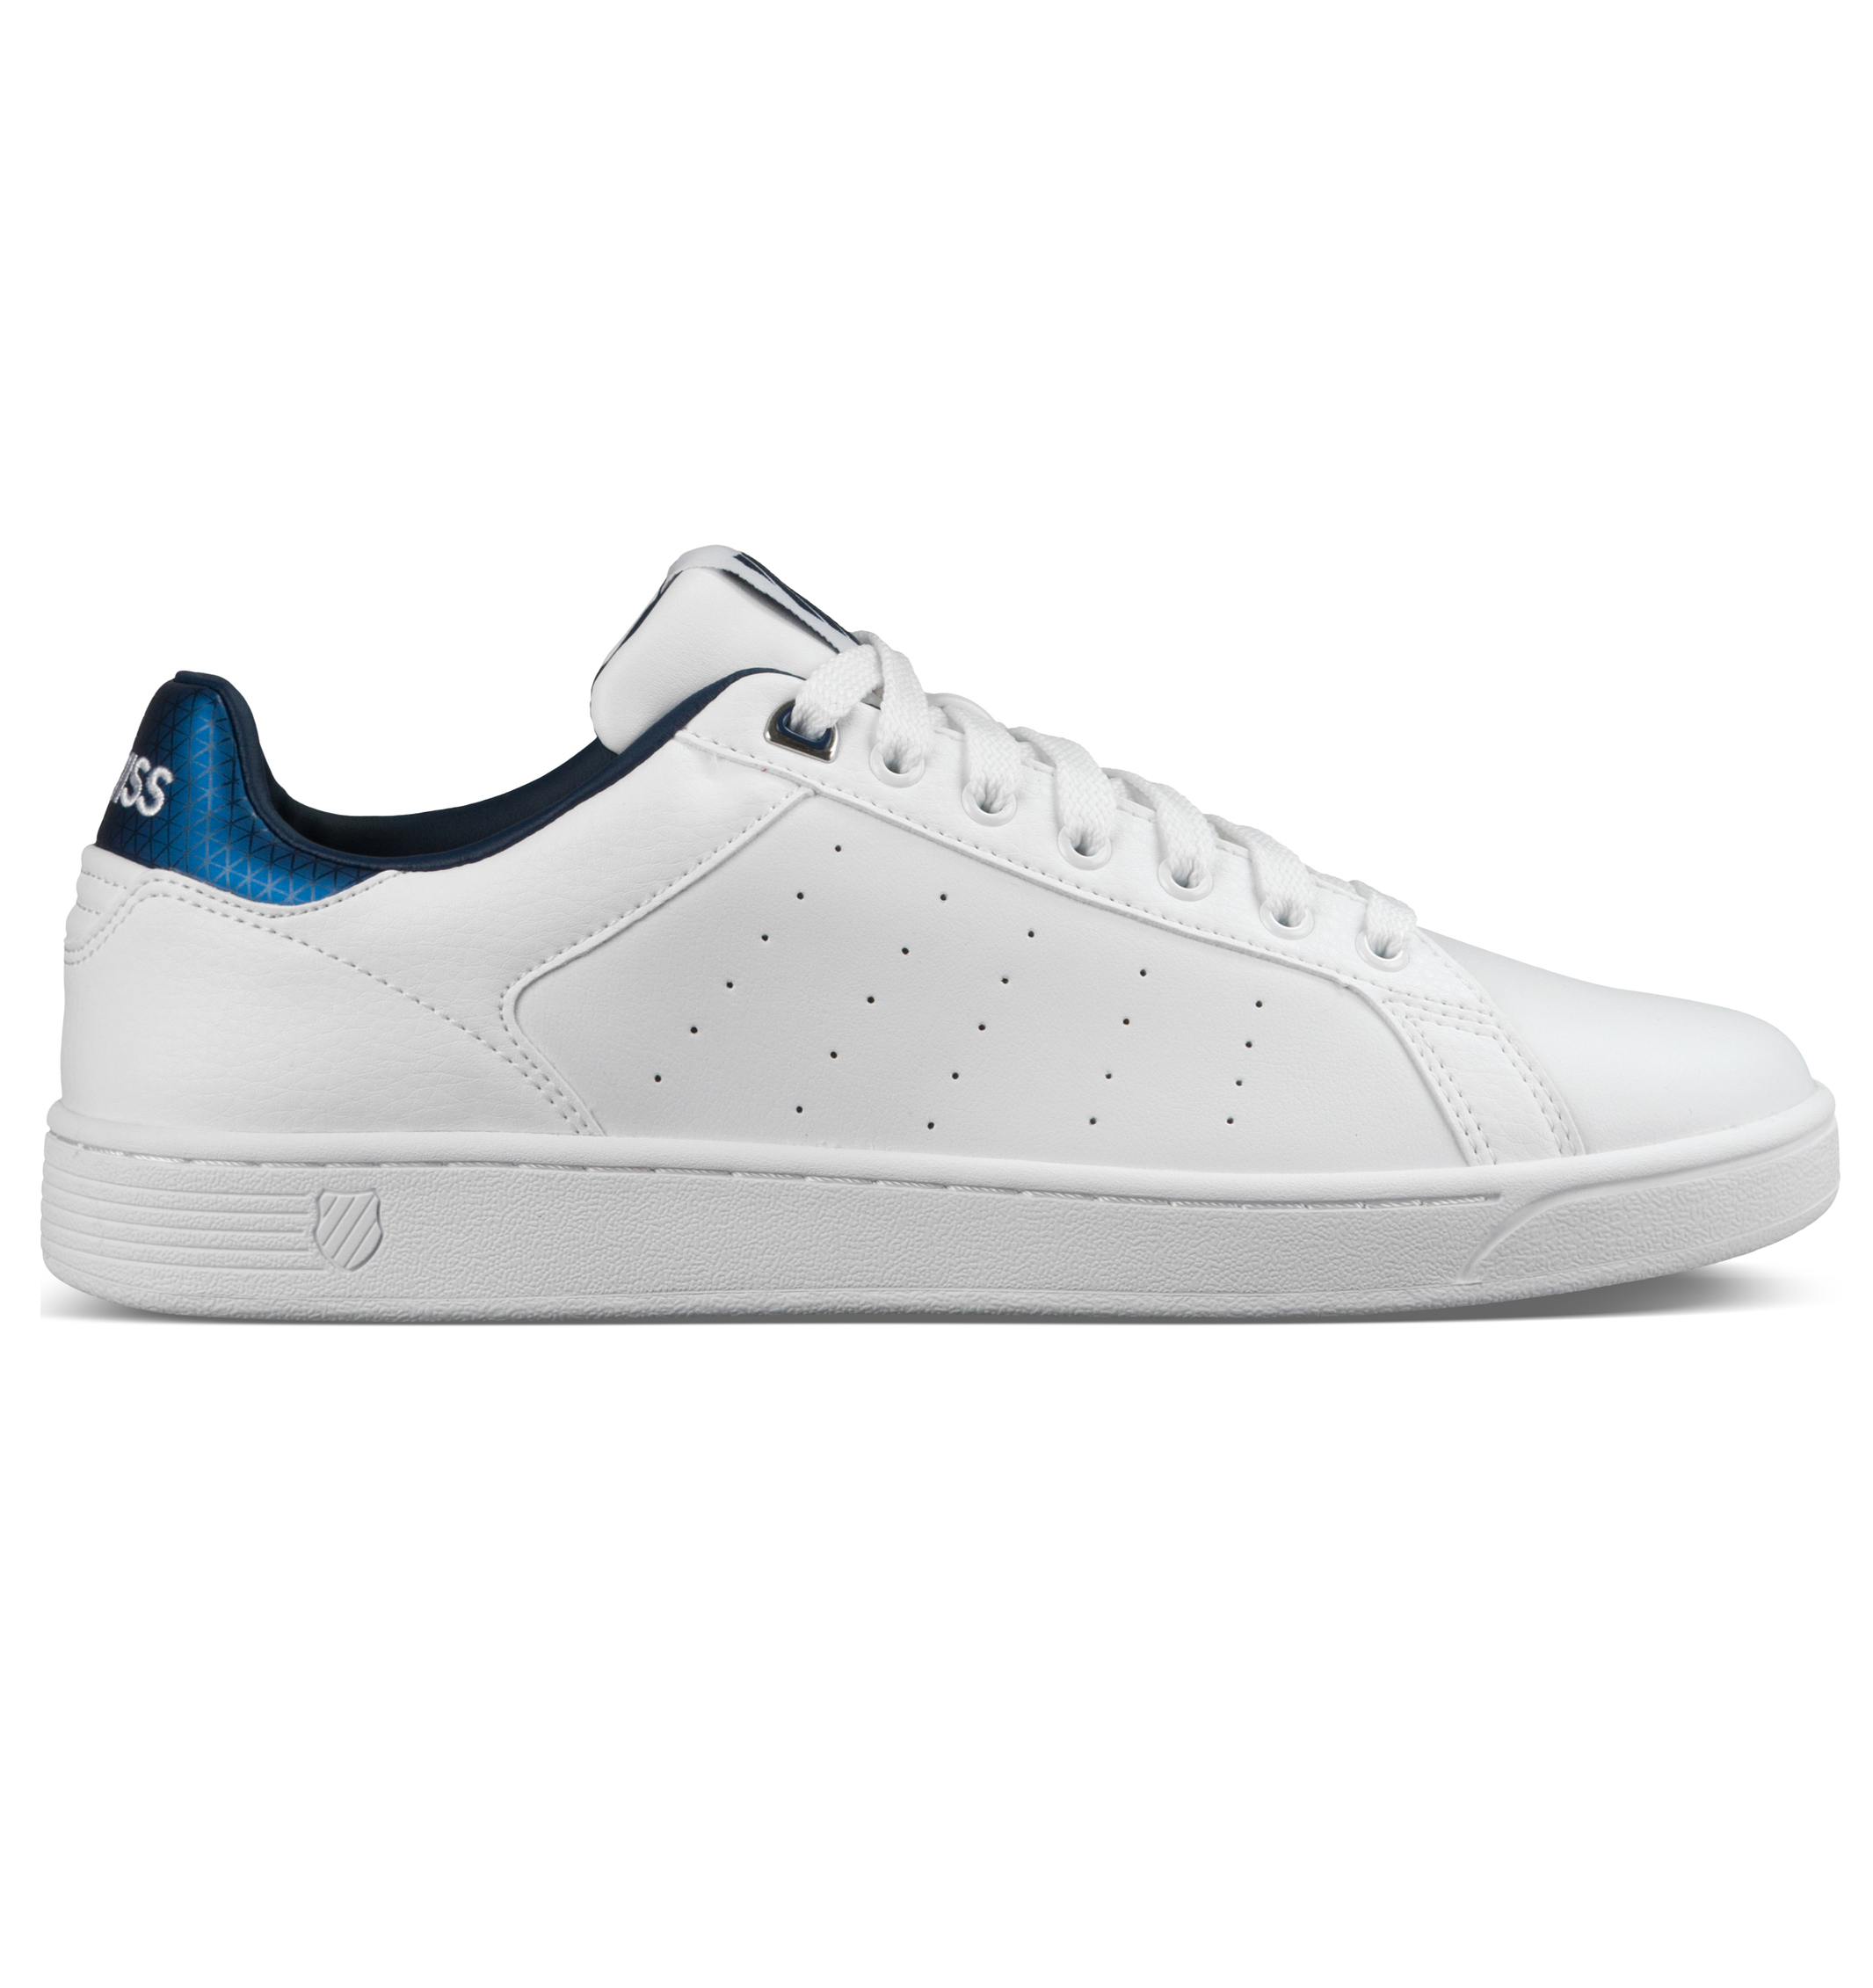 Fila Casual Shoes Online Shopping